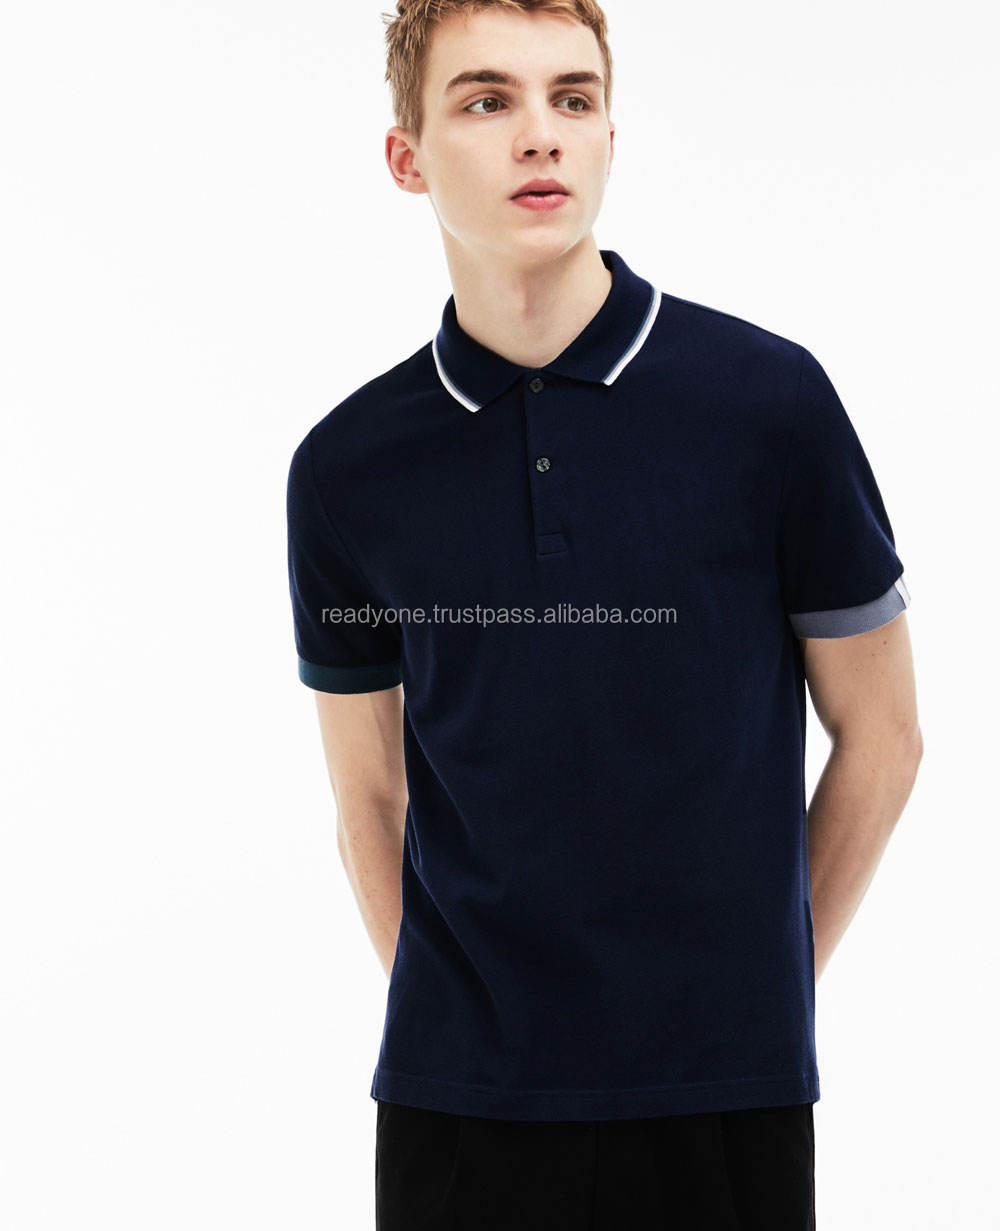 Men Classic Short Sleeve Solid Polo Shirt Men option blank stretch performance solid polo shirts